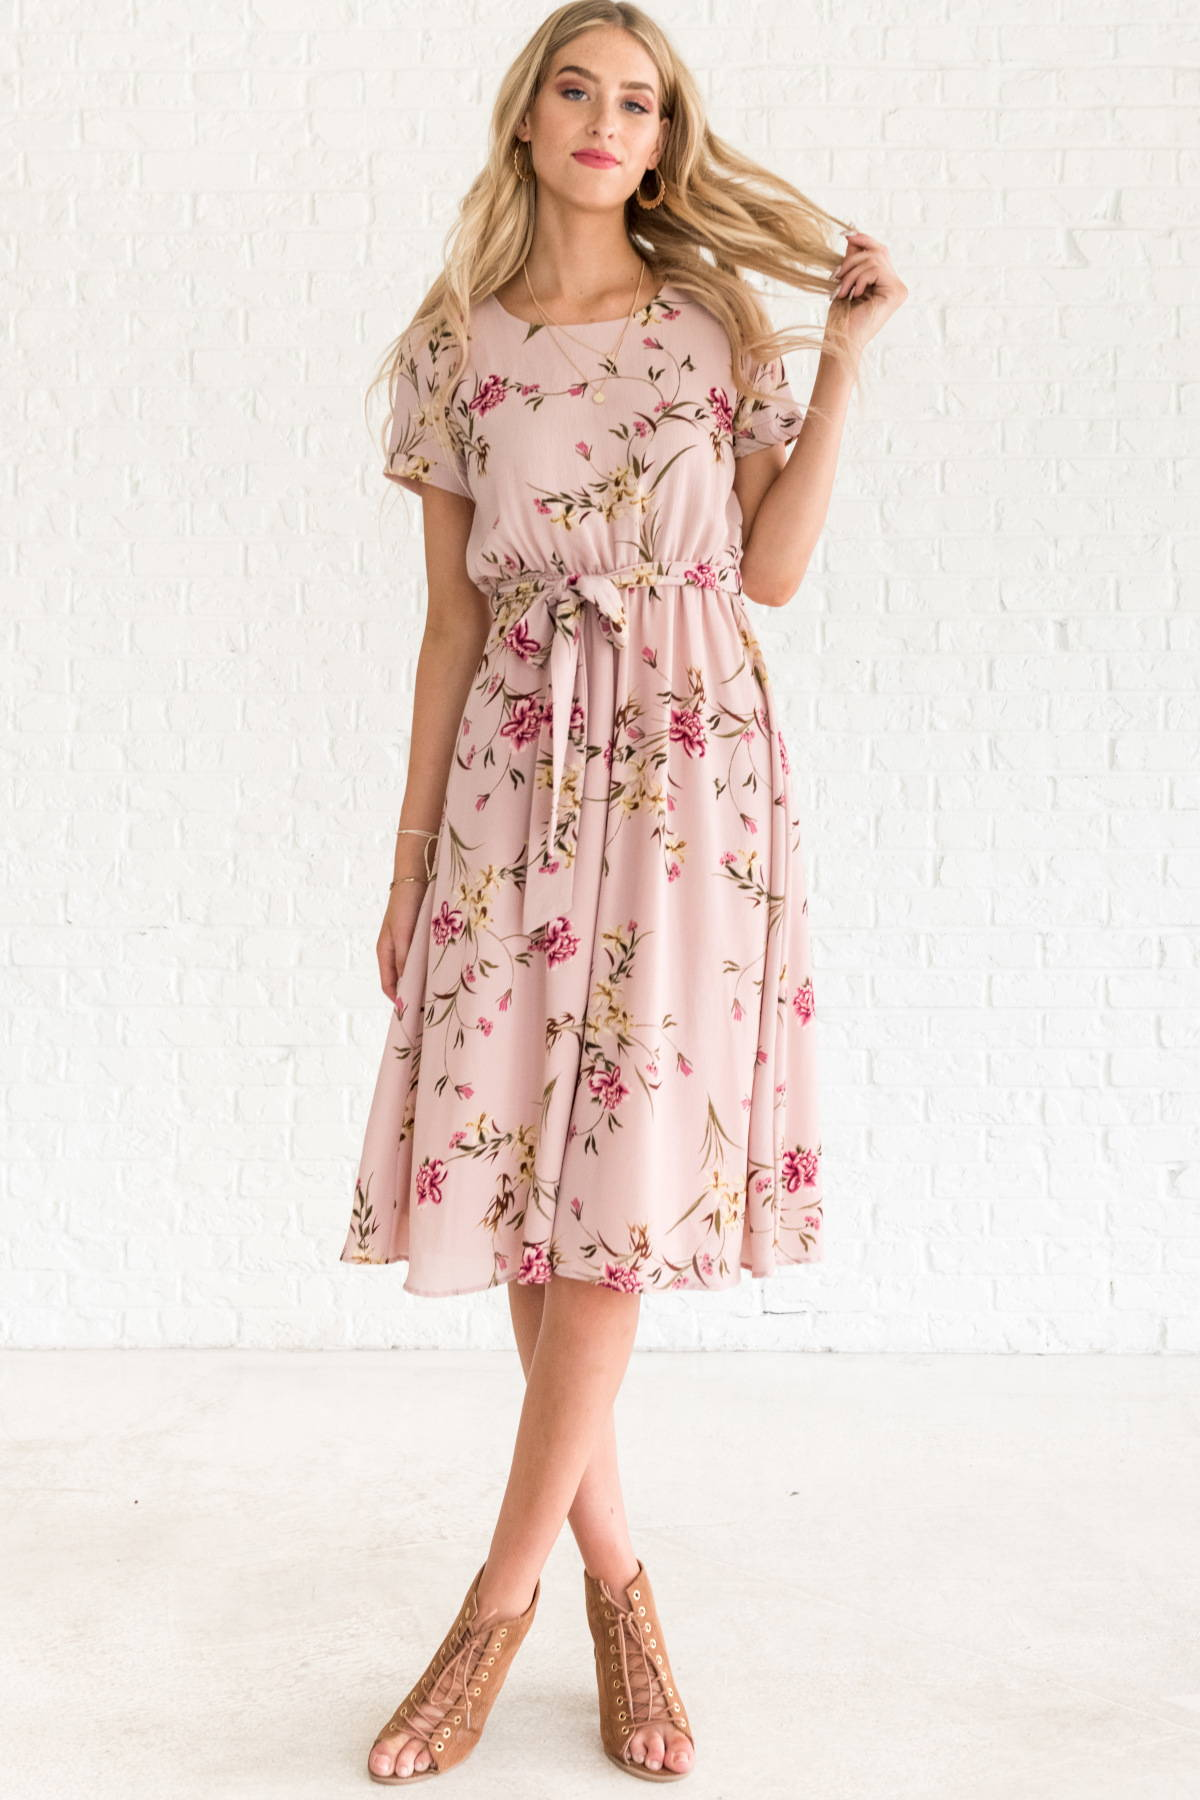 Blush Pink Cute Floral Boutique Midi Dresses Business Casual Work Dresses for Women